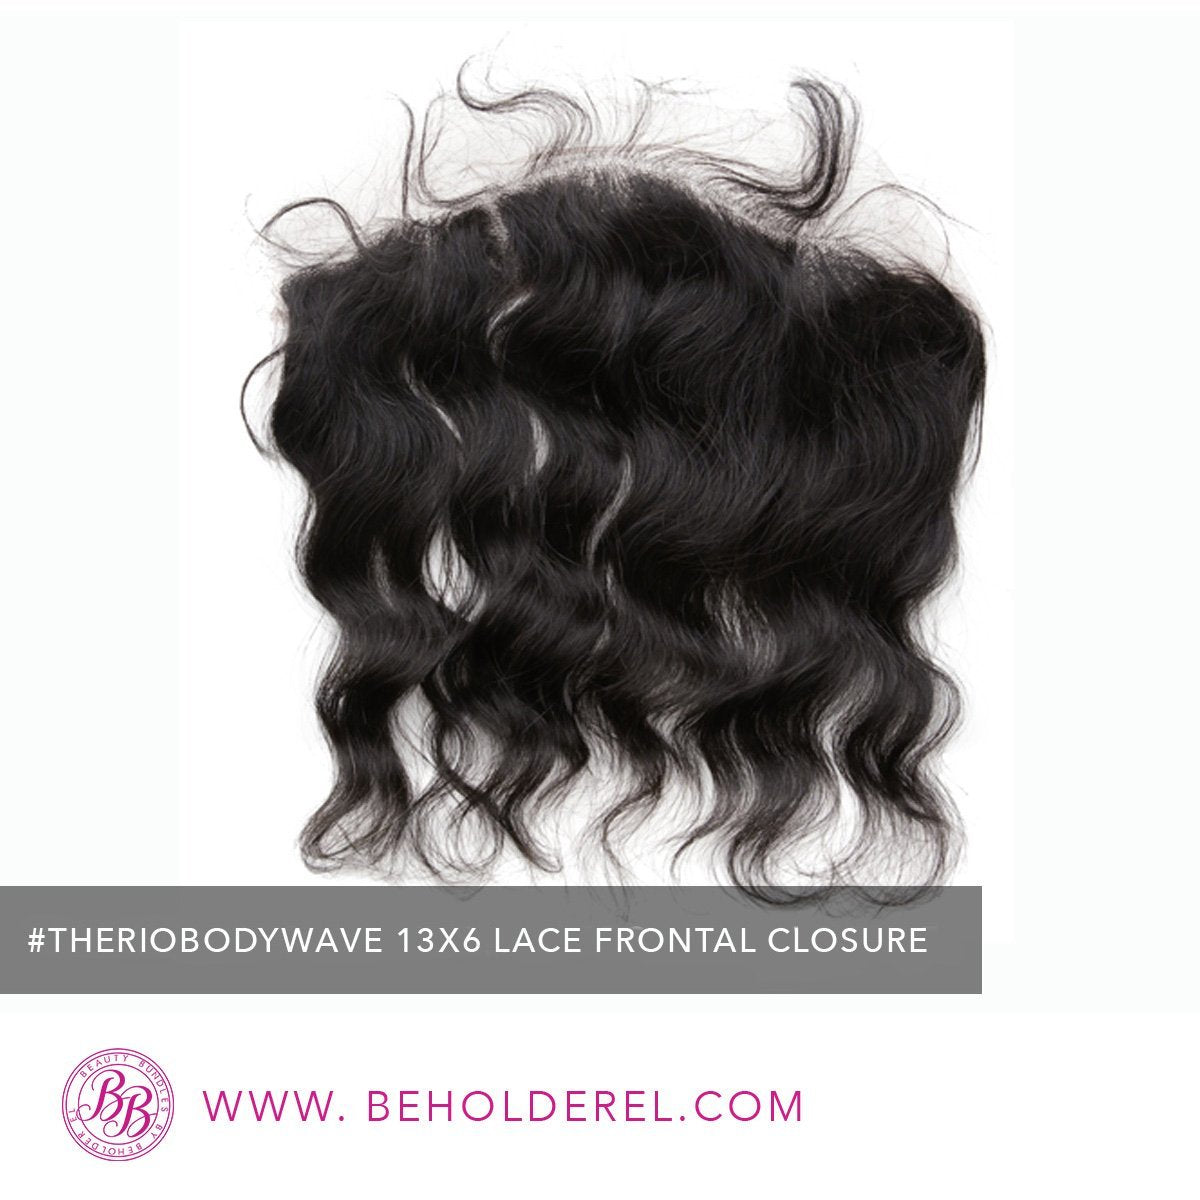 Brazilian Body Wave<br>HD Lace Frontal Closure<br>(The Rio Body Wave 13 x 6 Lace Frontal Closure)